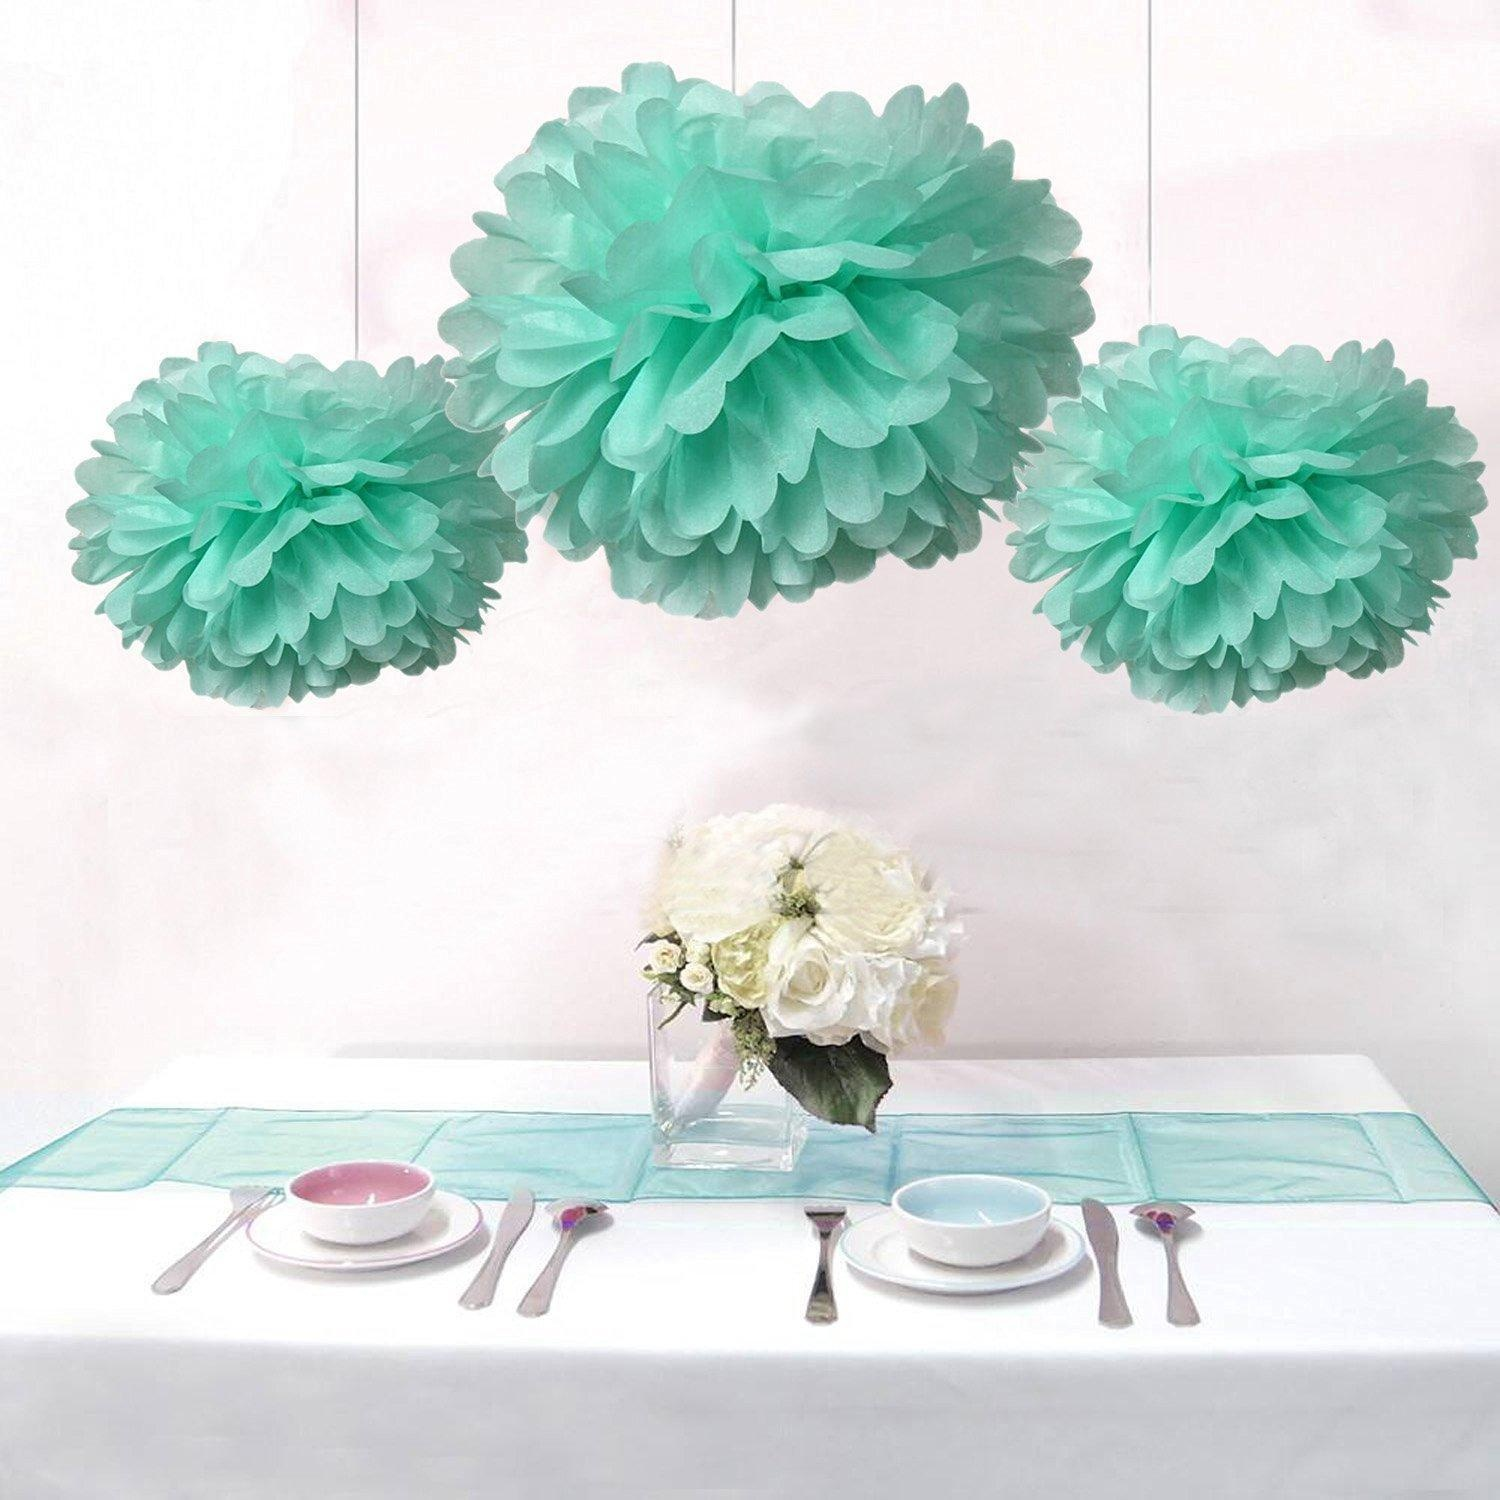 Hanging Pom Pom Decorations Online Store Joinwin 8pcs Mixed Mint Greentissue Paper Pom Poms